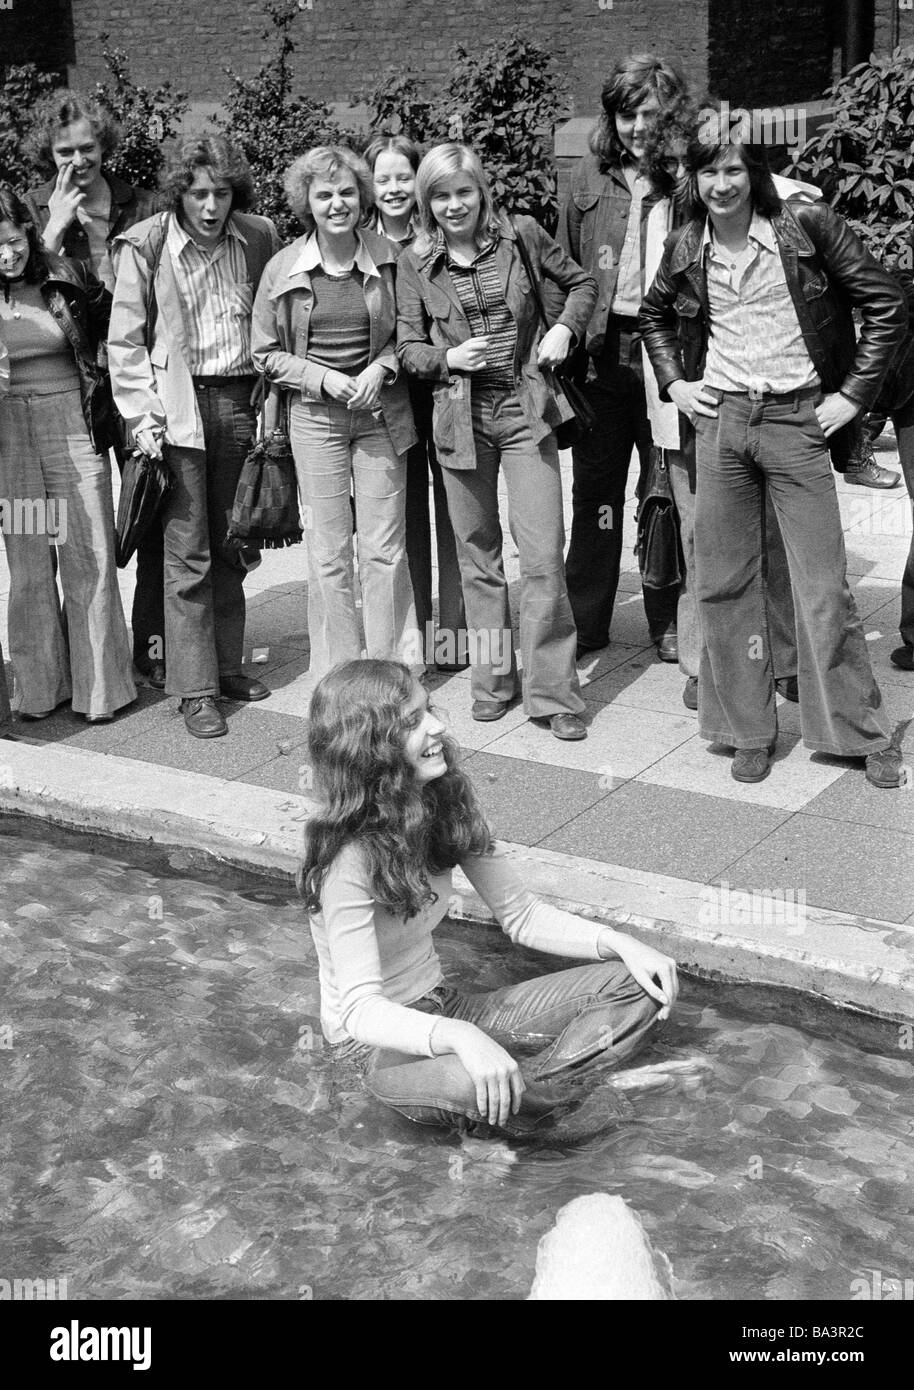 Seventies, black and white photo, humour, people, test of courage, young girl sits fully dressed in a water basin, - Stock Image